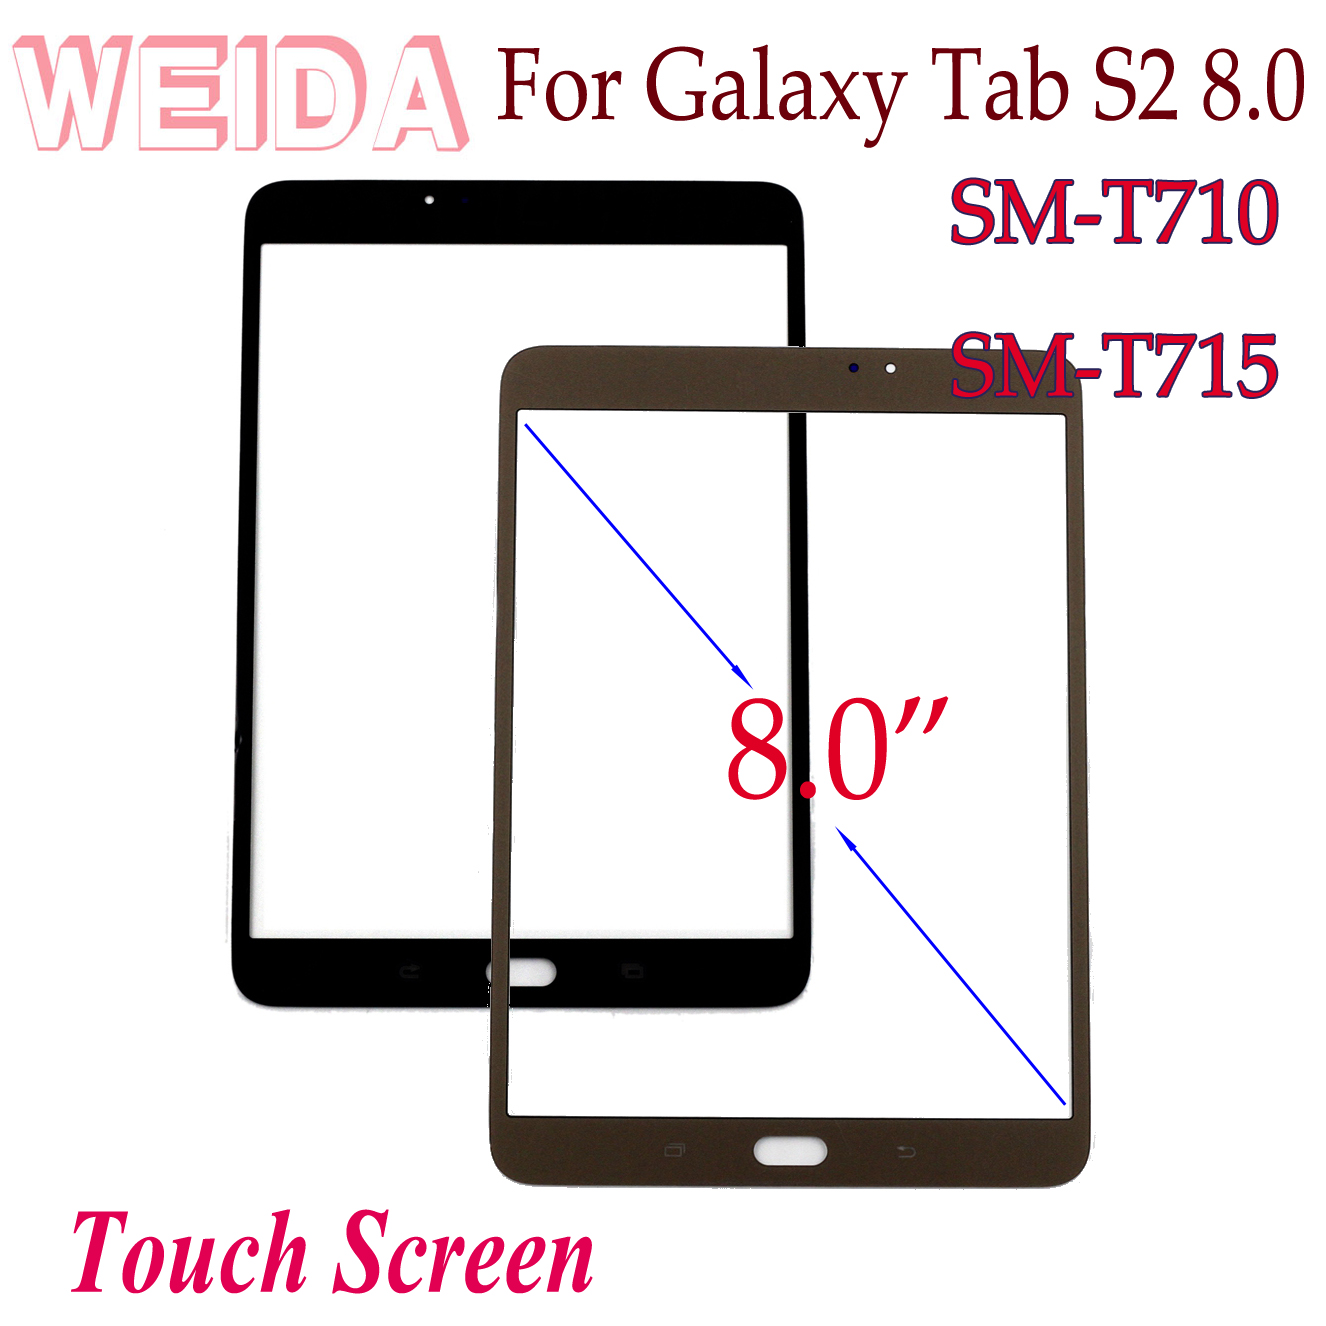 WEIDA Screen Replacment For <font><b>Samsung</b></font> Galaxy <font><b>Tab</b></font> <font><b>S2</b></font> 8.0 SM-T710 SM-T715 Touch Screen Glass Panel image